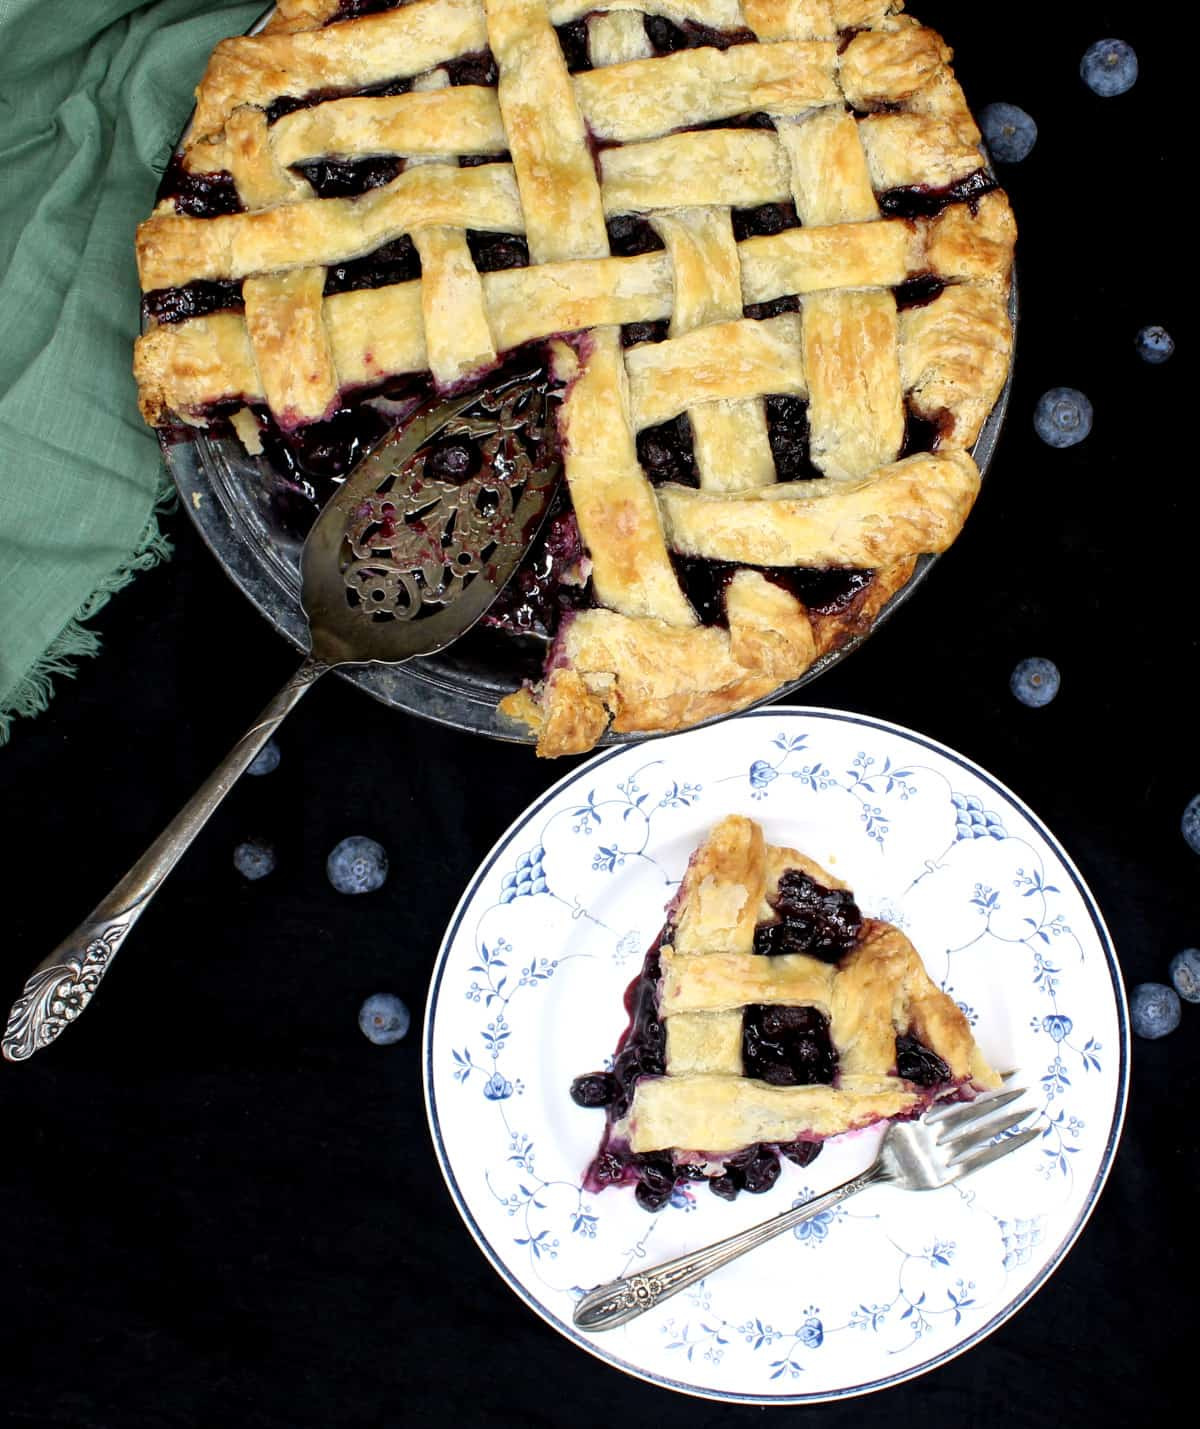 A slice of vegan blueberry pie on a blue and white china plate with a delicate floral pattern and a silver fork with the whole pie next to it and blueberries scattered around.